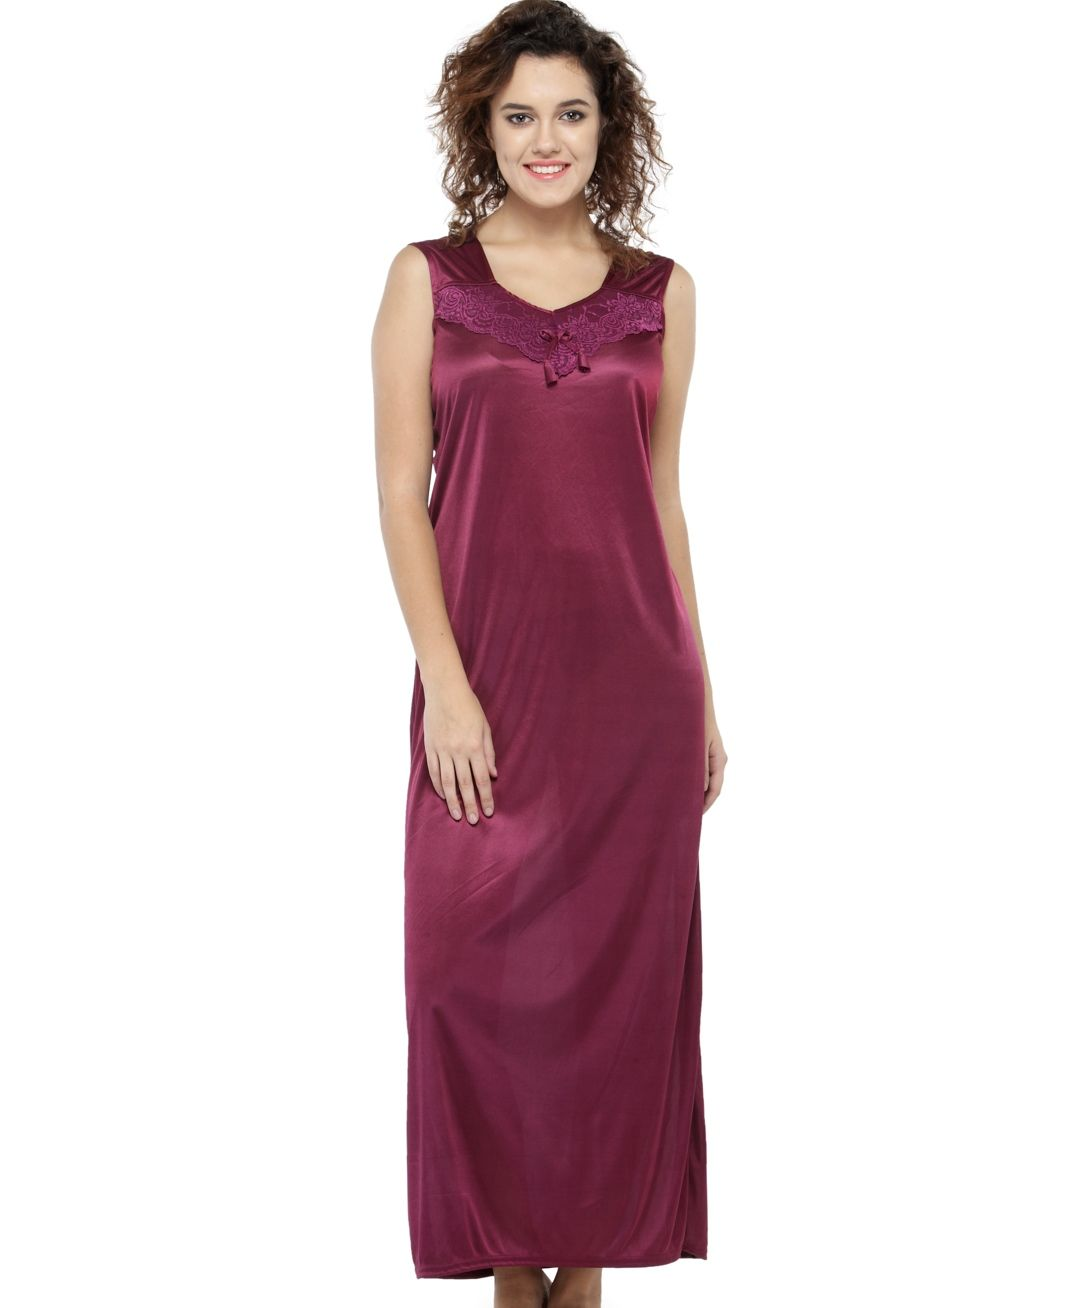 N Gal Women S Solid Maroon Long Night Gown For Women Buy N Gal Women S Solid Maroon Long Night Gown For Women Online At Best Price In India Nykaa